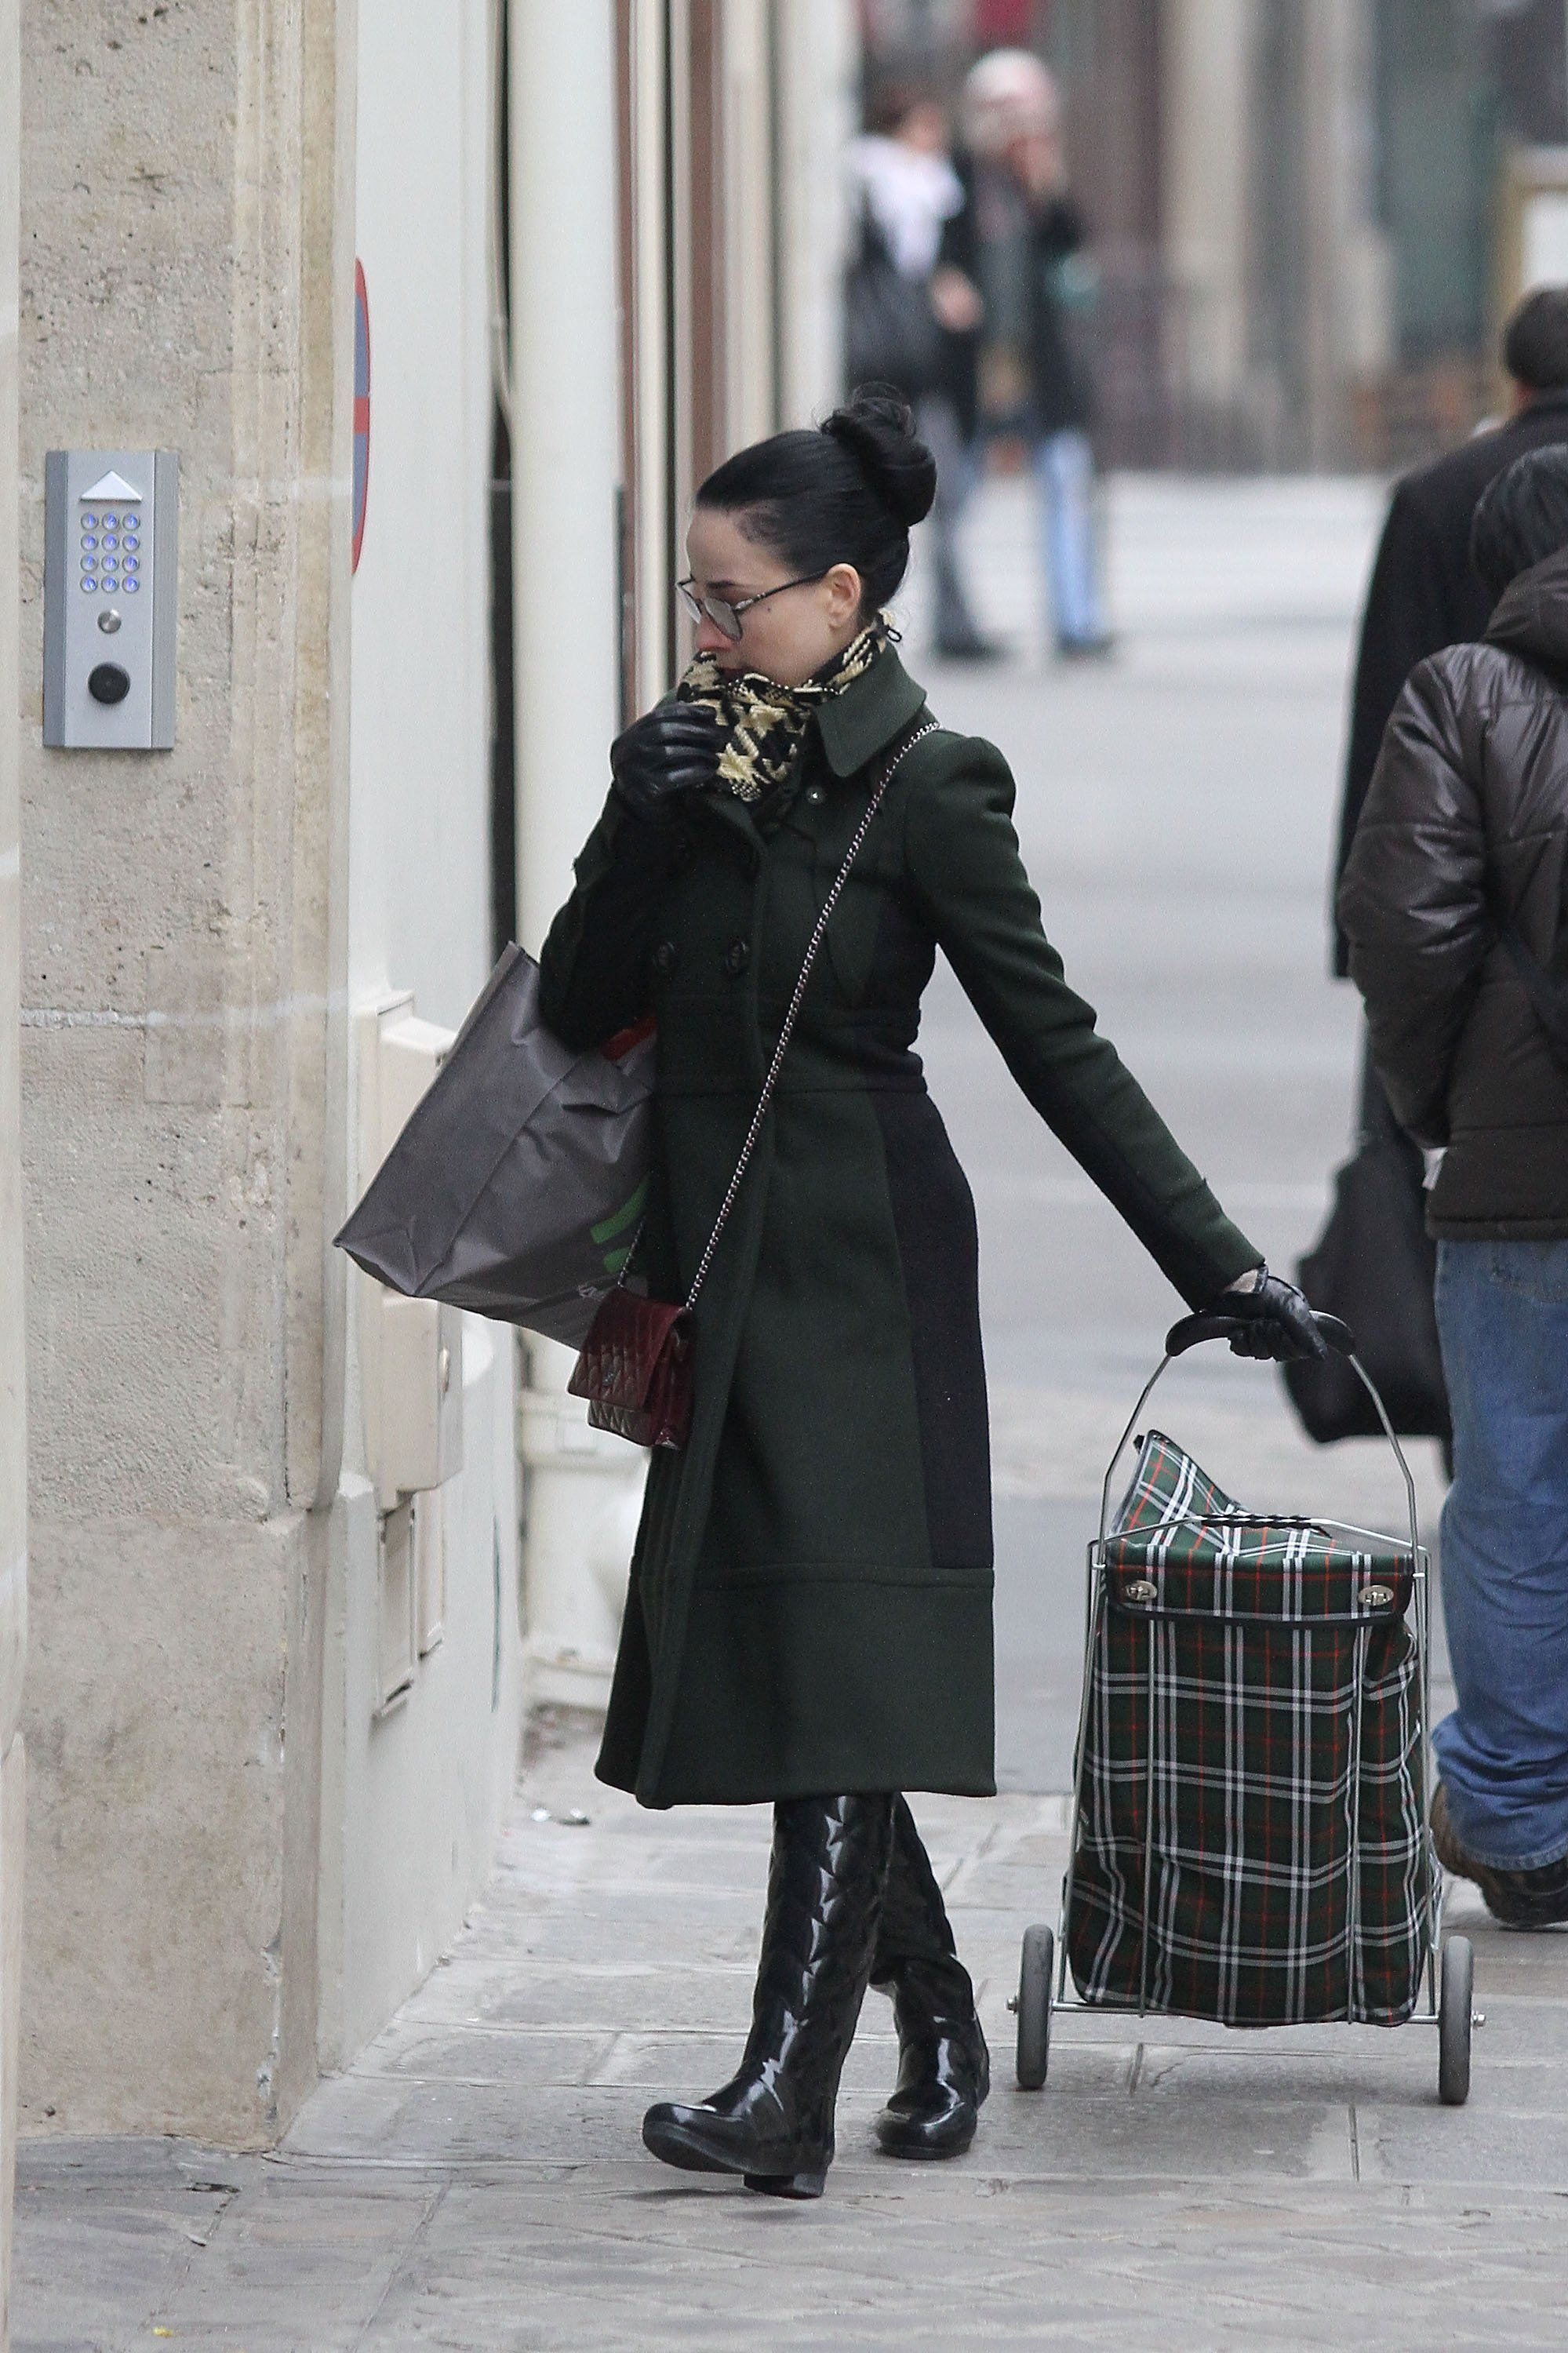 DVT and her shopping trolley. SHOPPING TROLLEY!! Very chic it is too - nothing better for shopping at a street market.